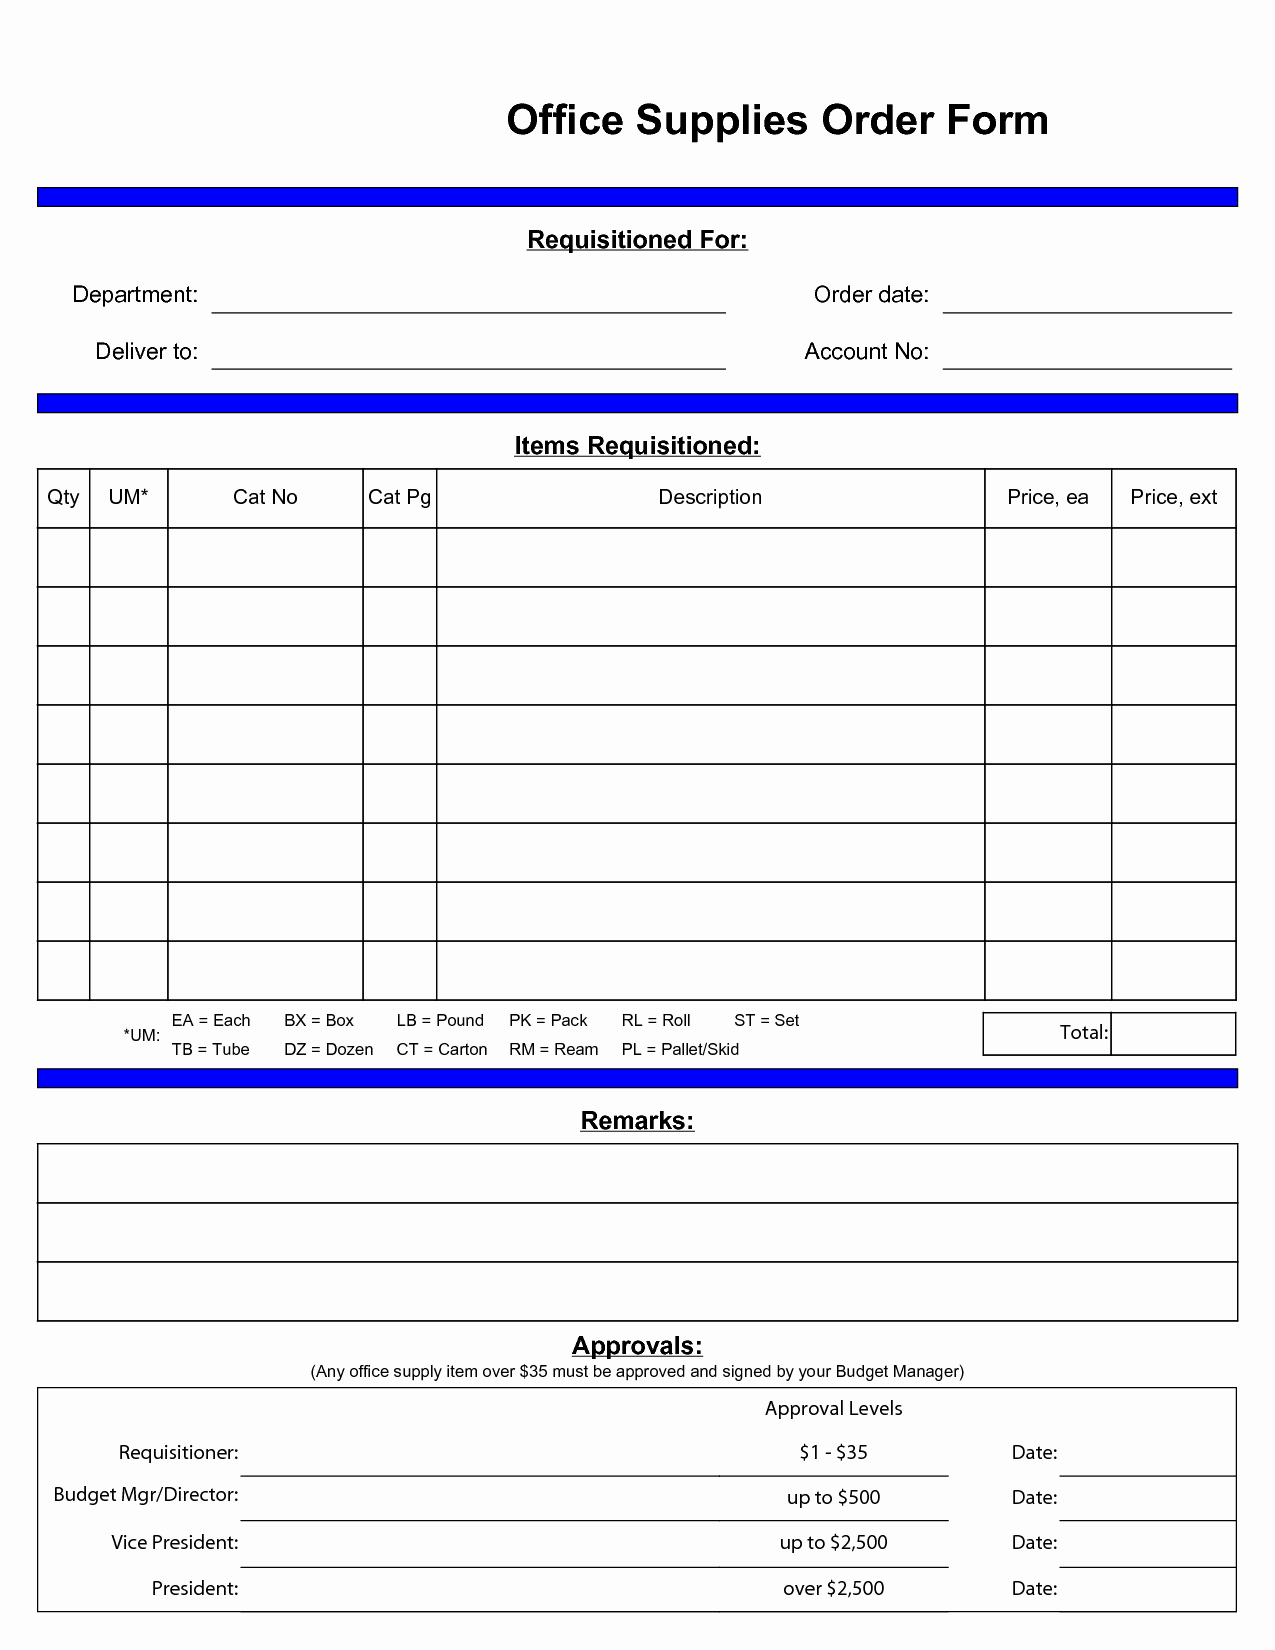 post standard office supply order form